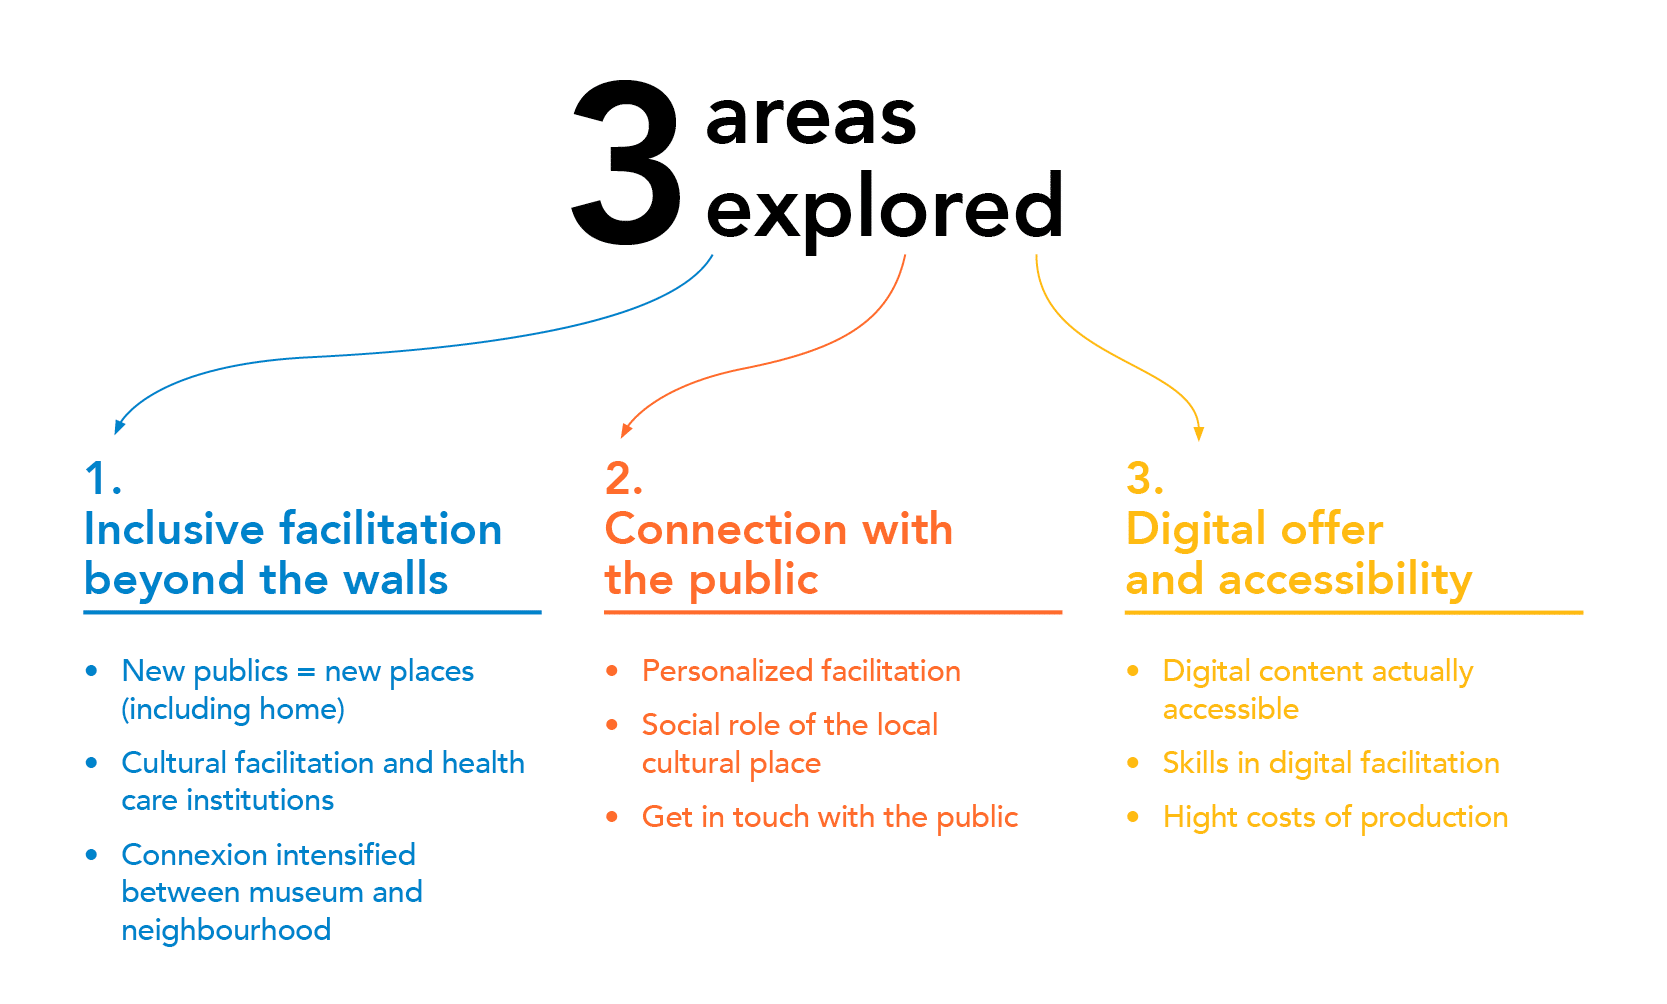 The 3 areas explored during the webinars